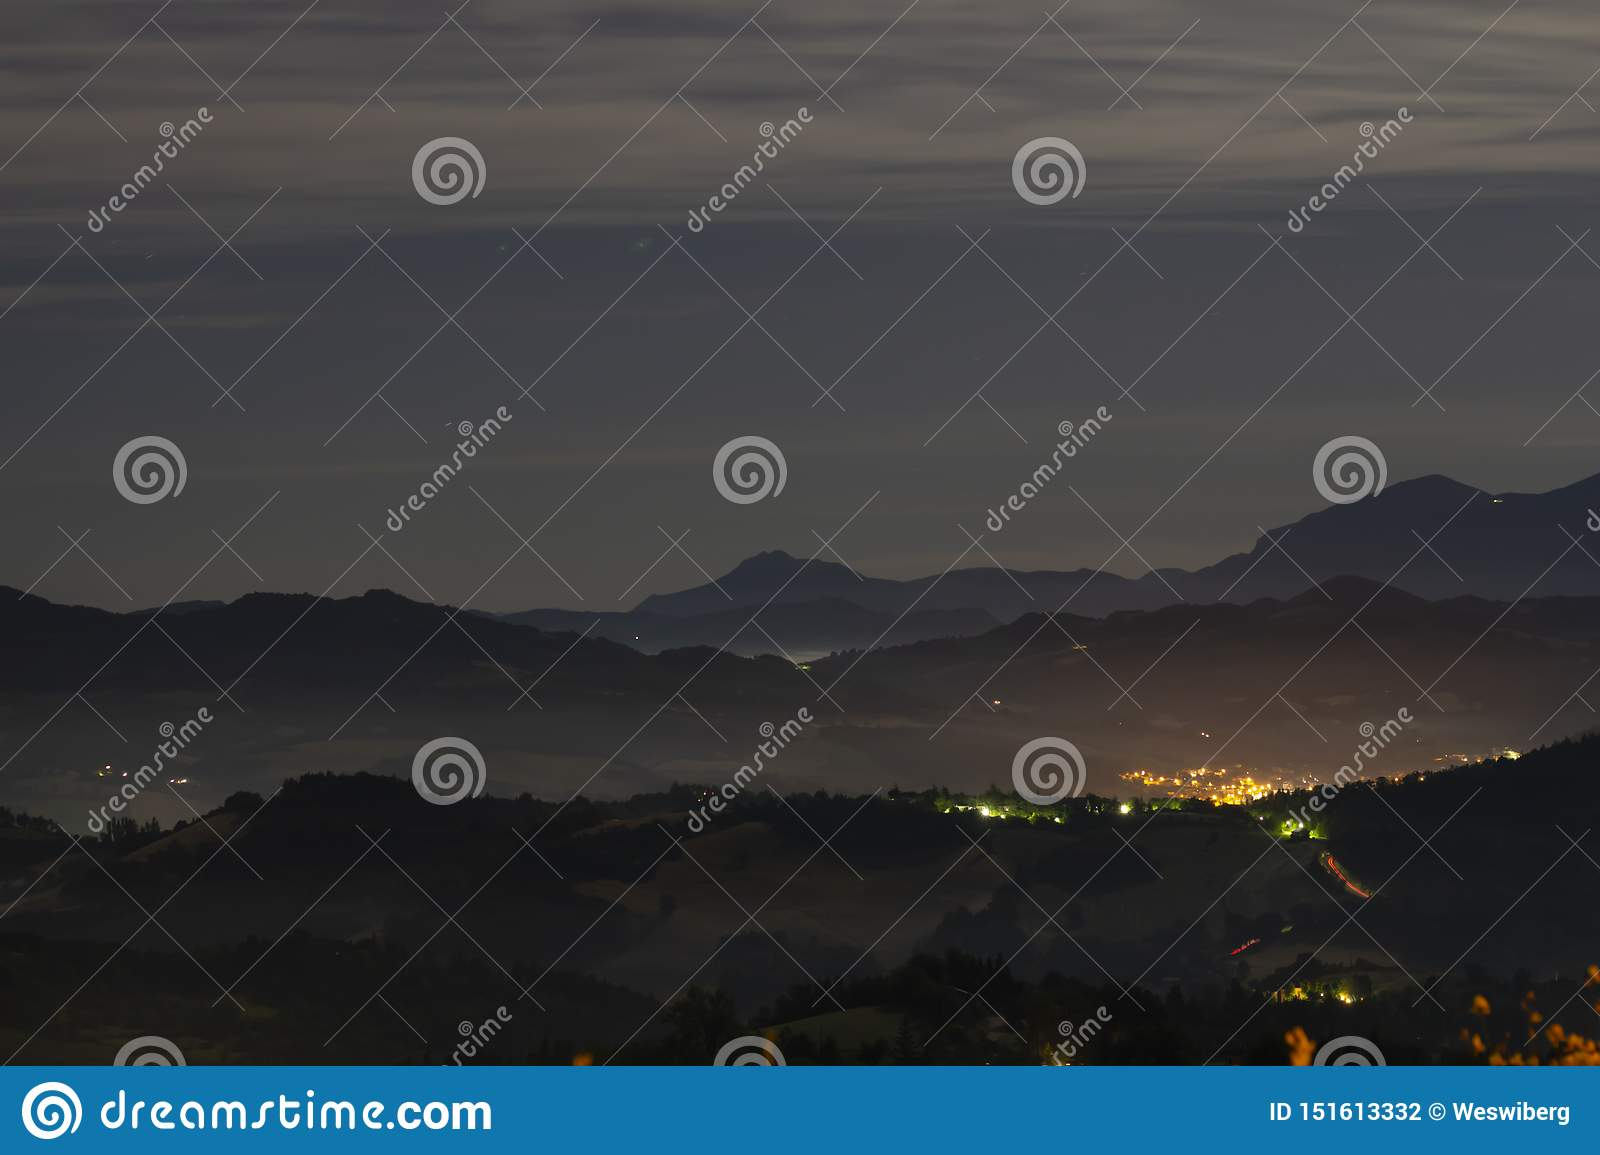 Nighttime hills outside Urbino Italy